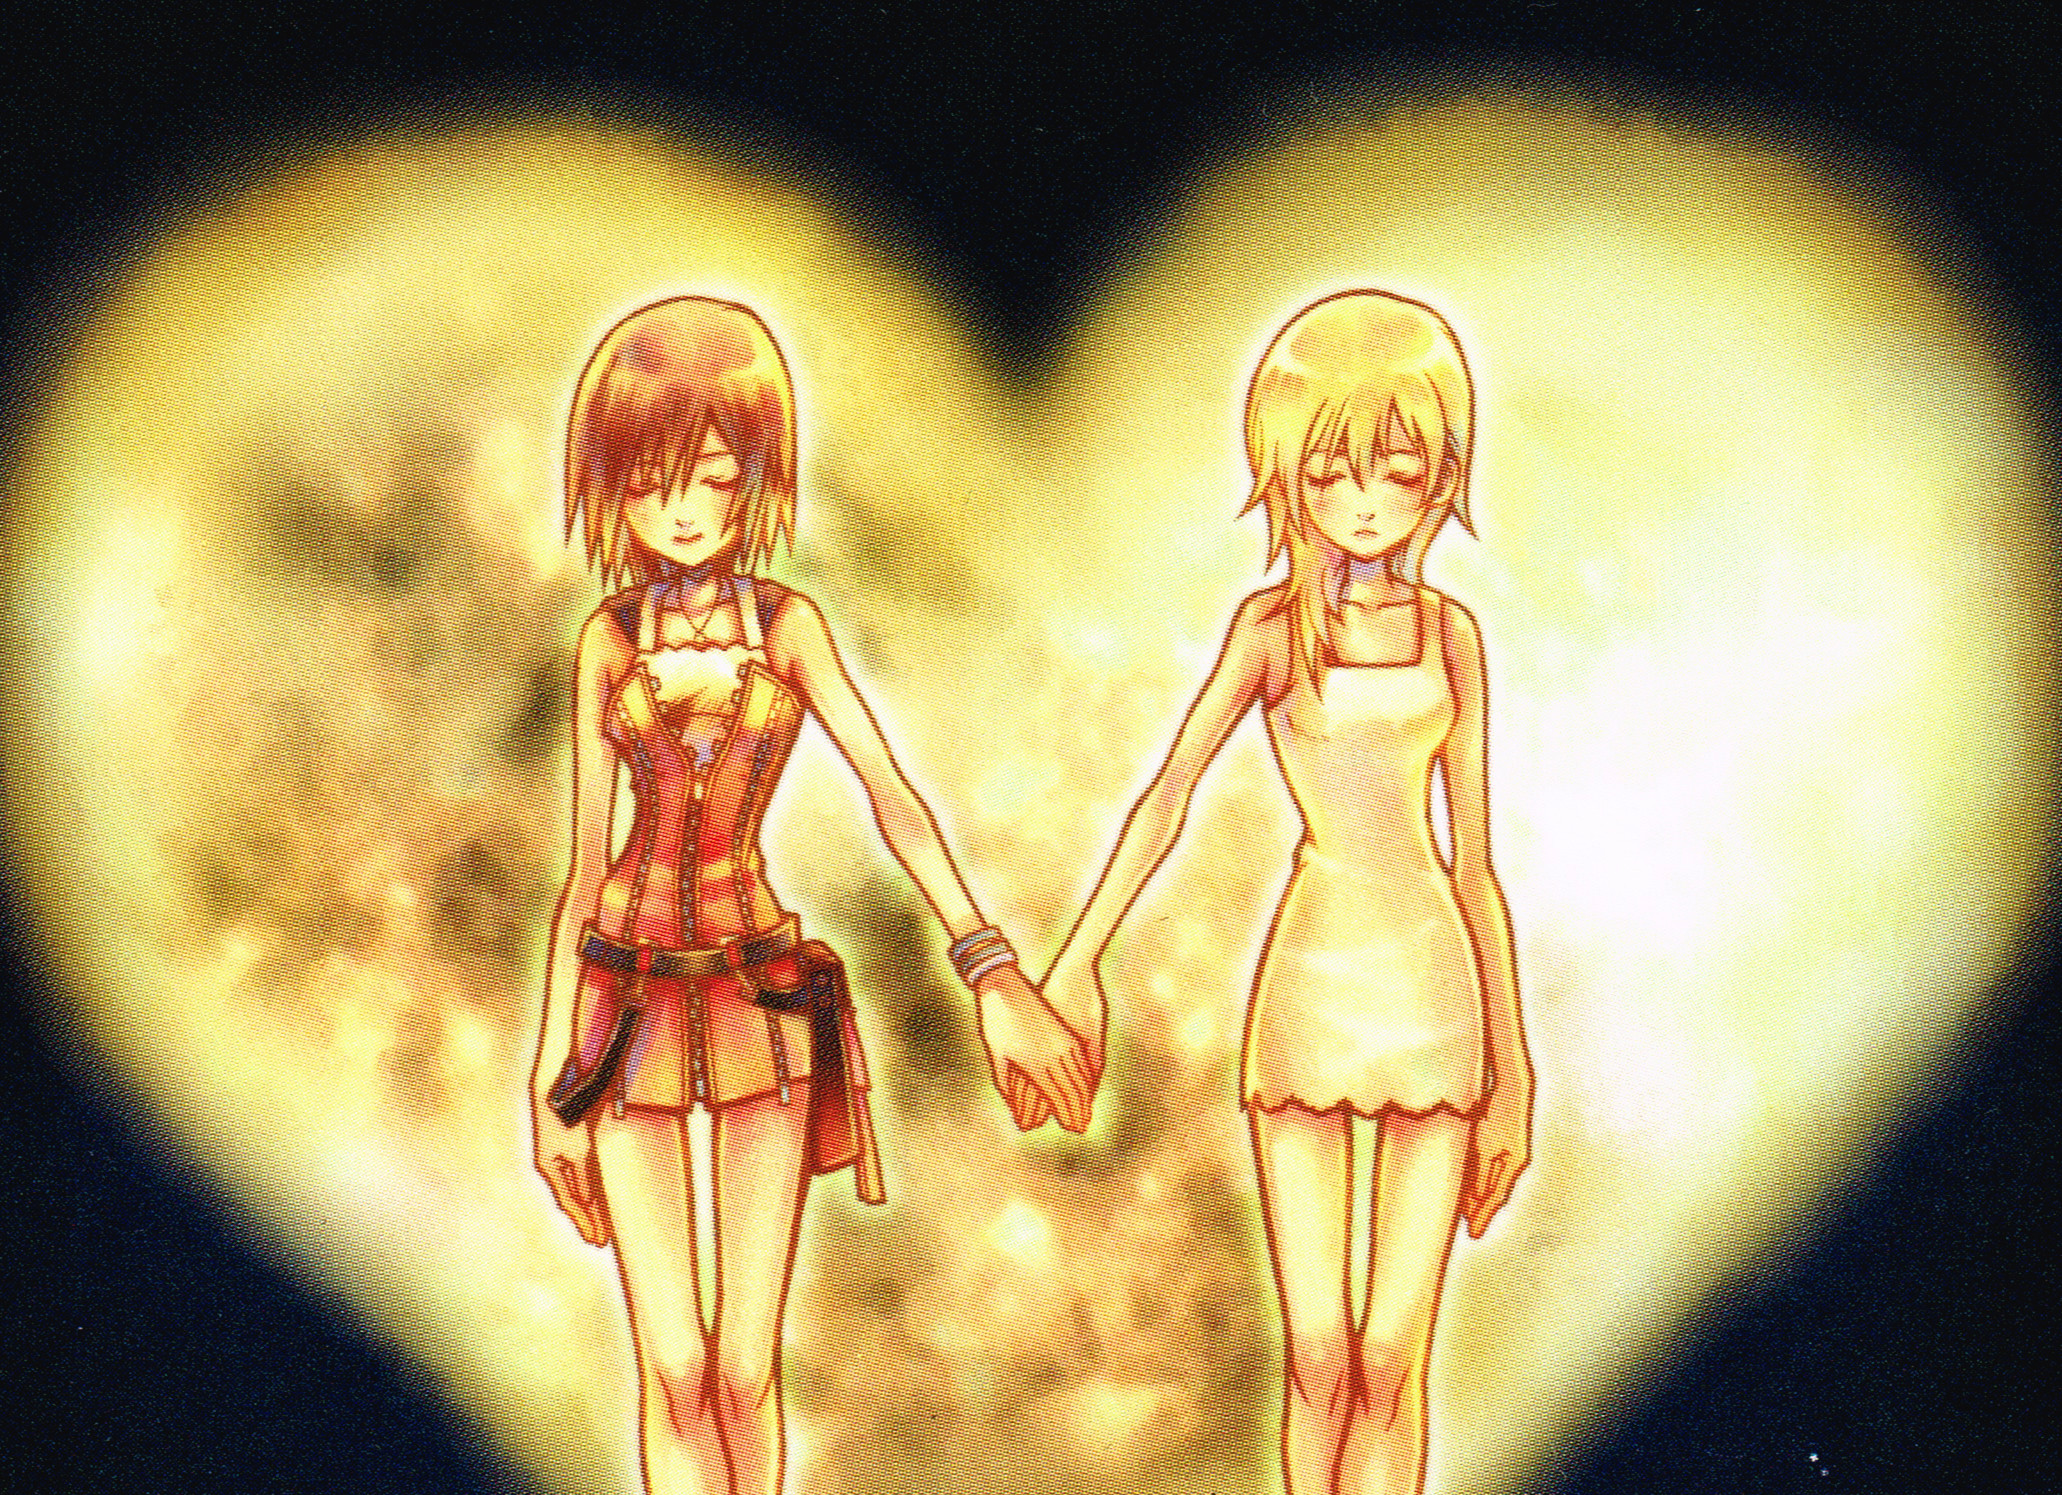 Res: 2062x1495, Kairi and her 'Nobody' Namine.